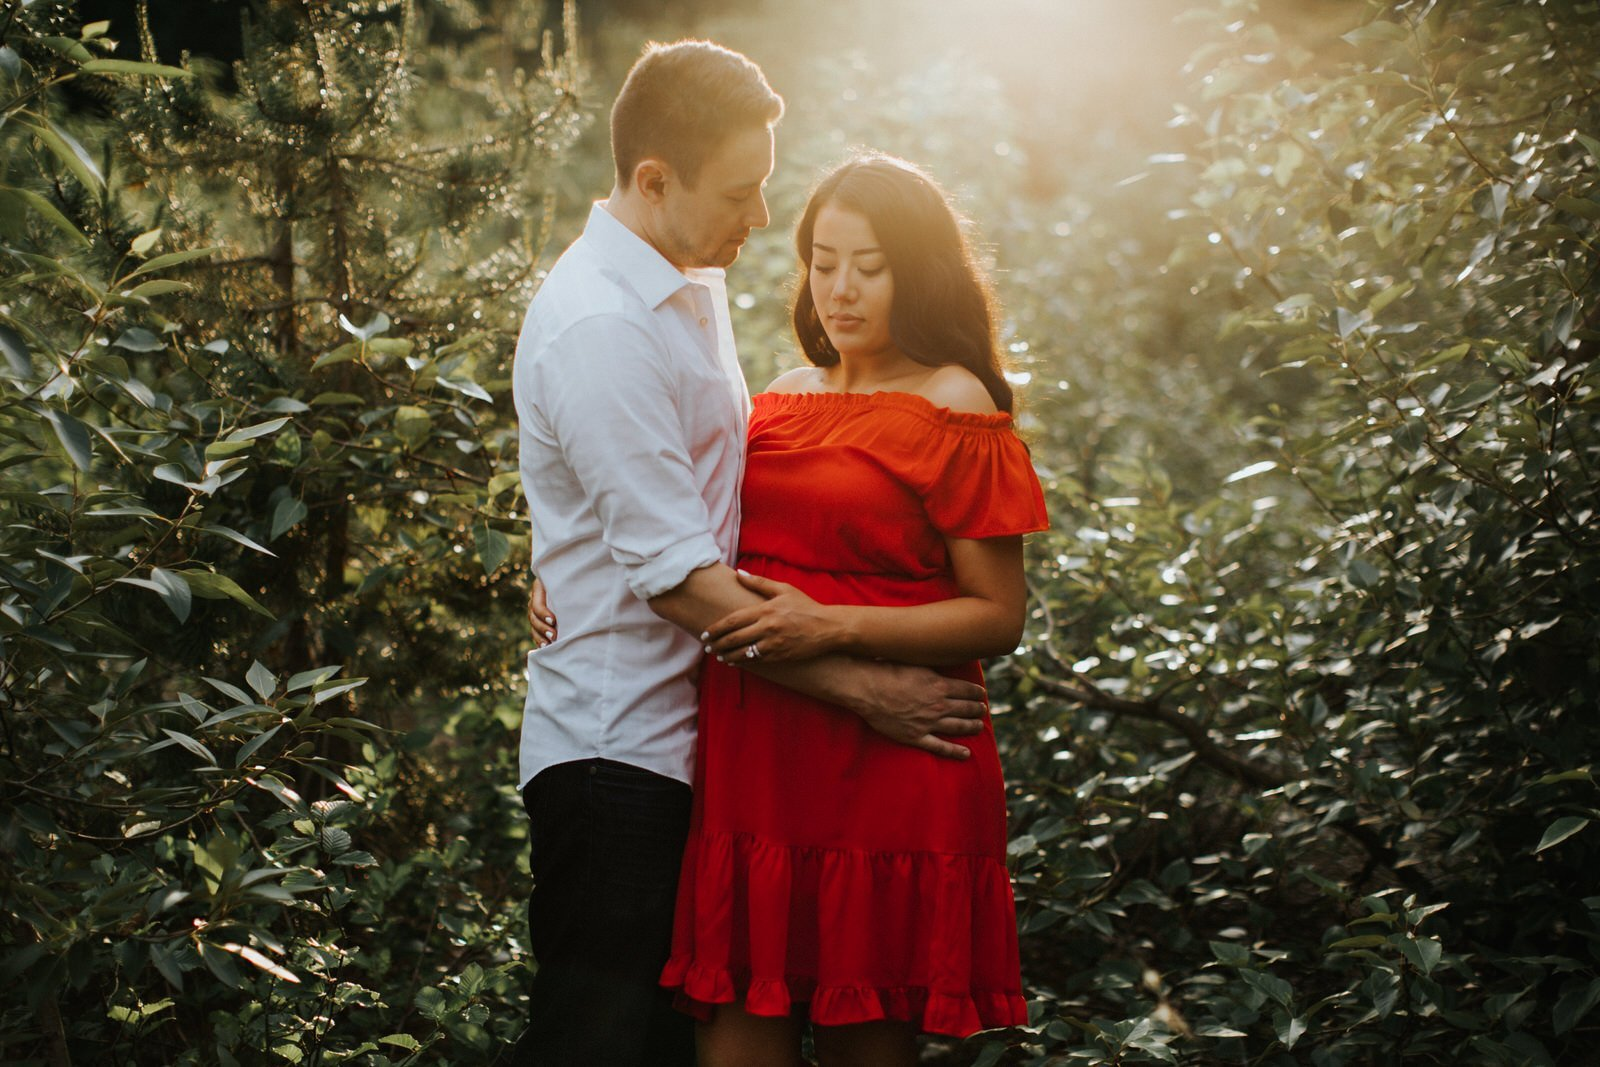 A woman in a red dress cuddles with her husband during an engagement session